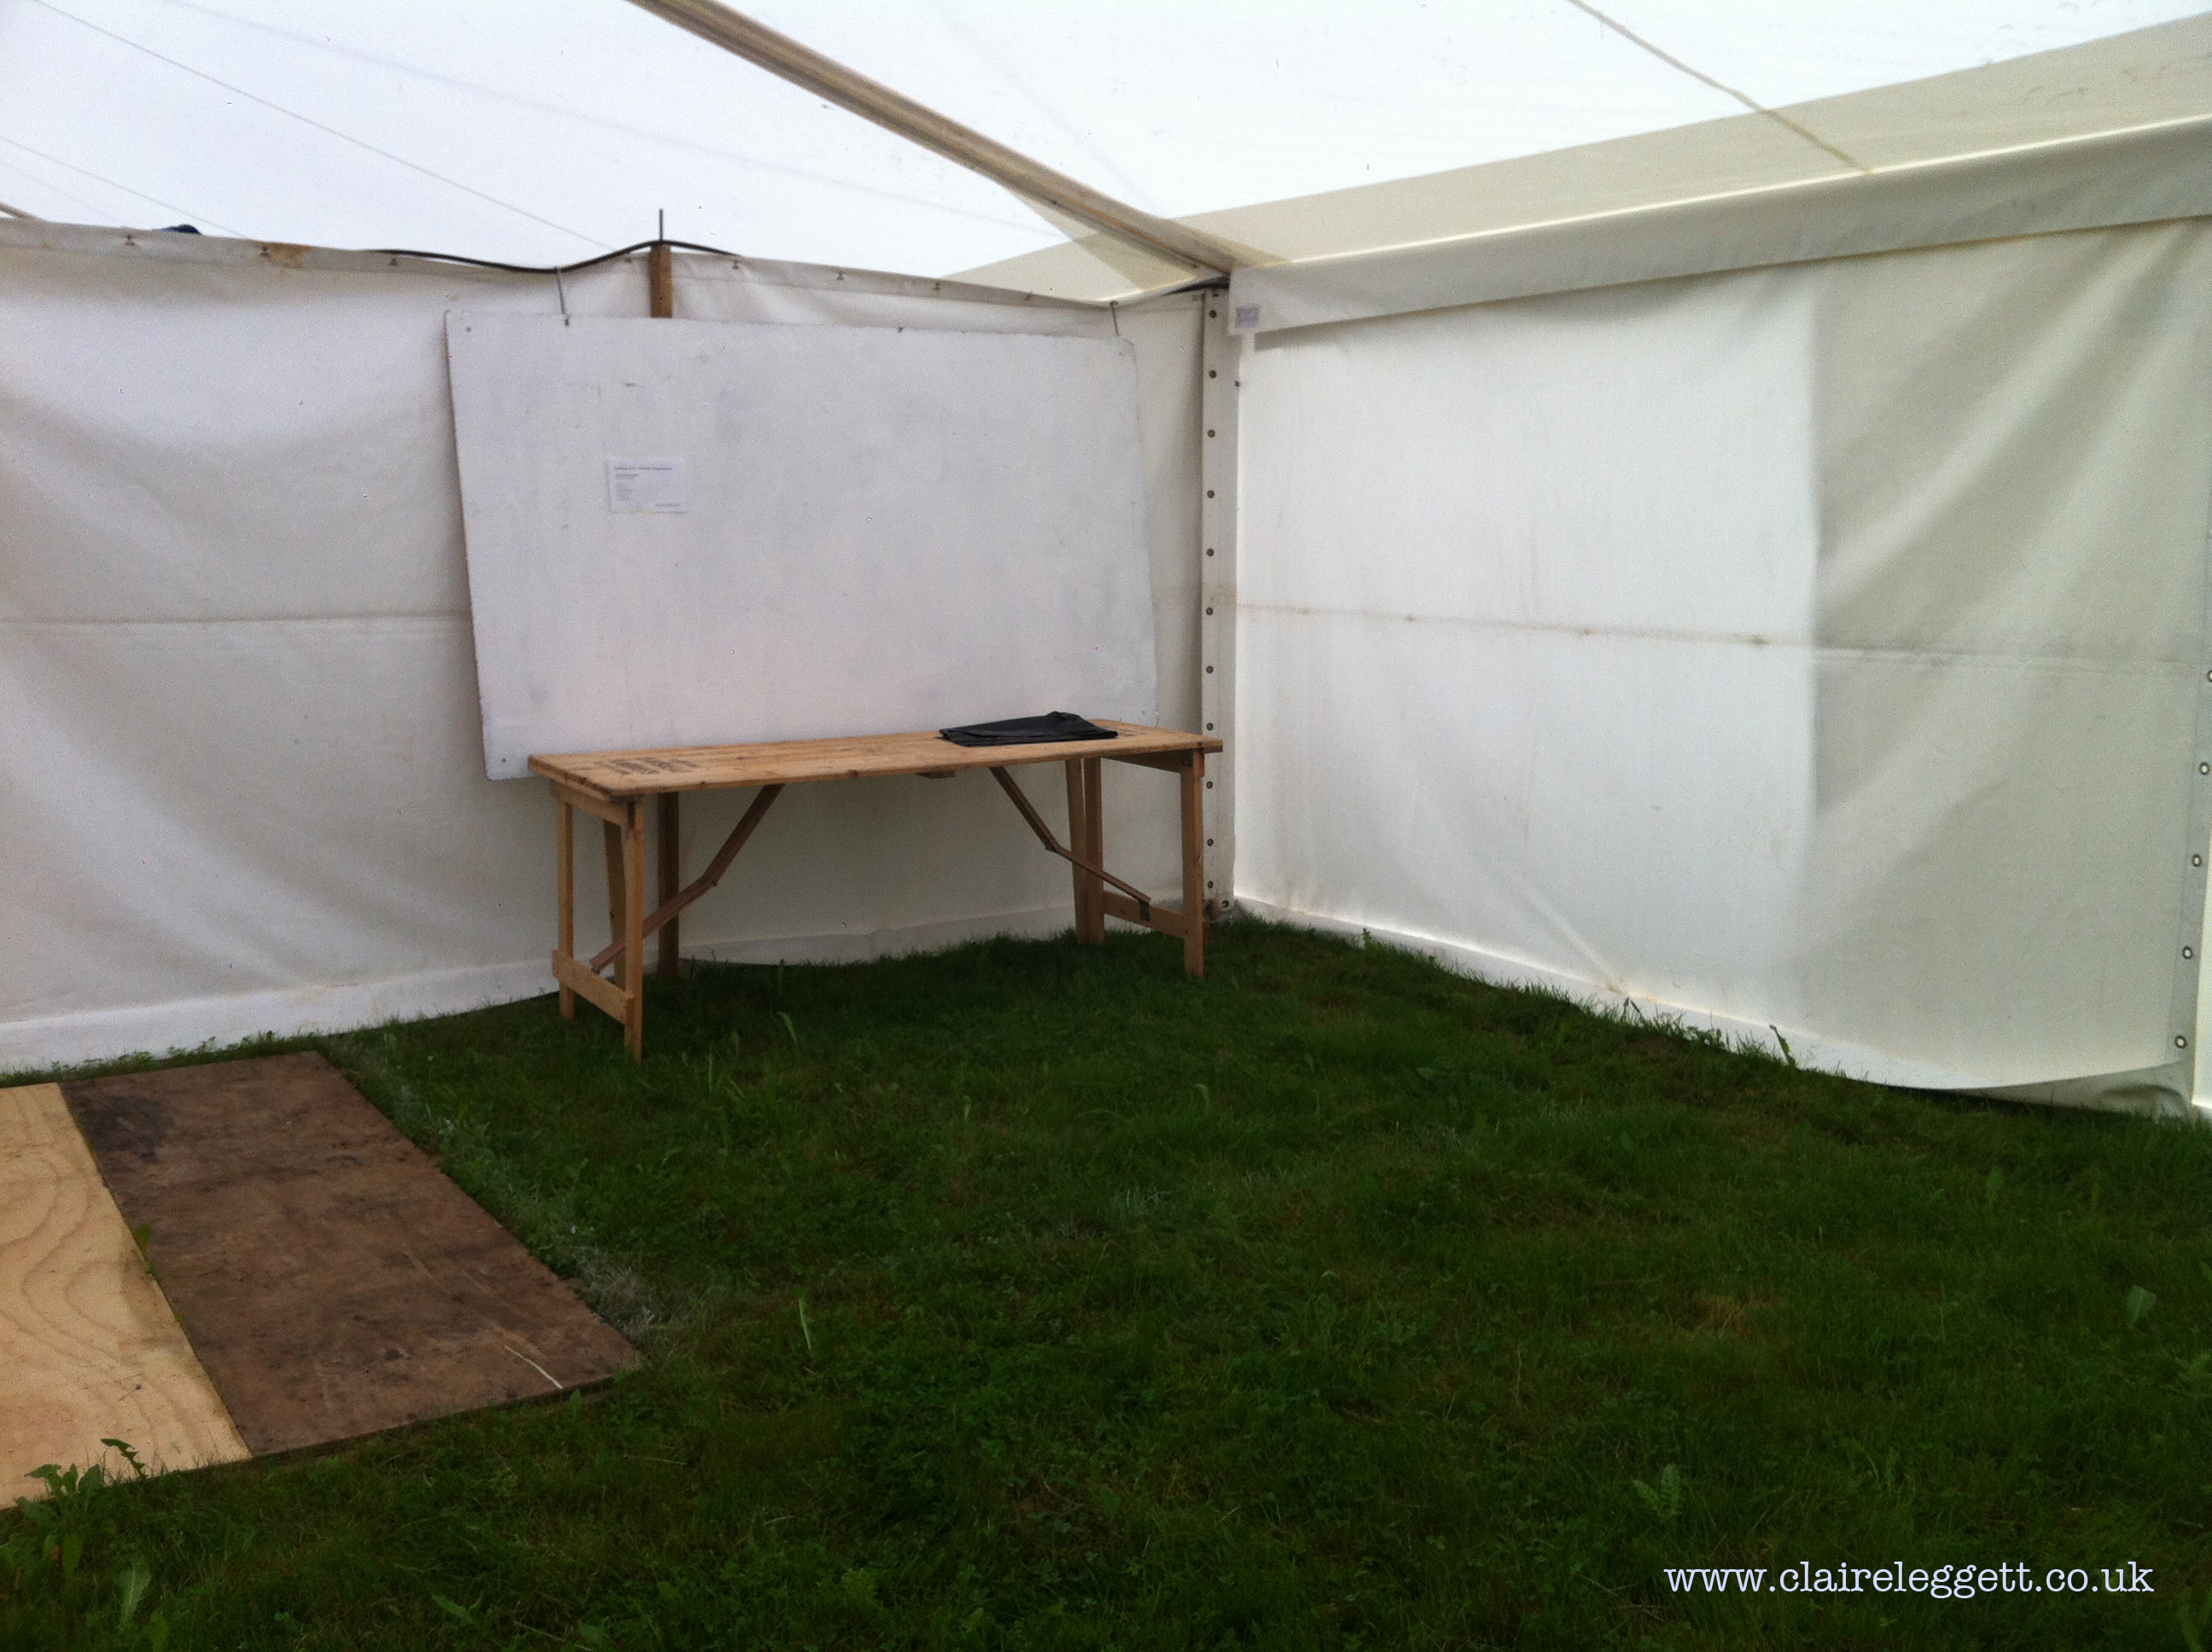 claire_leggett_patchings_2014_setup1